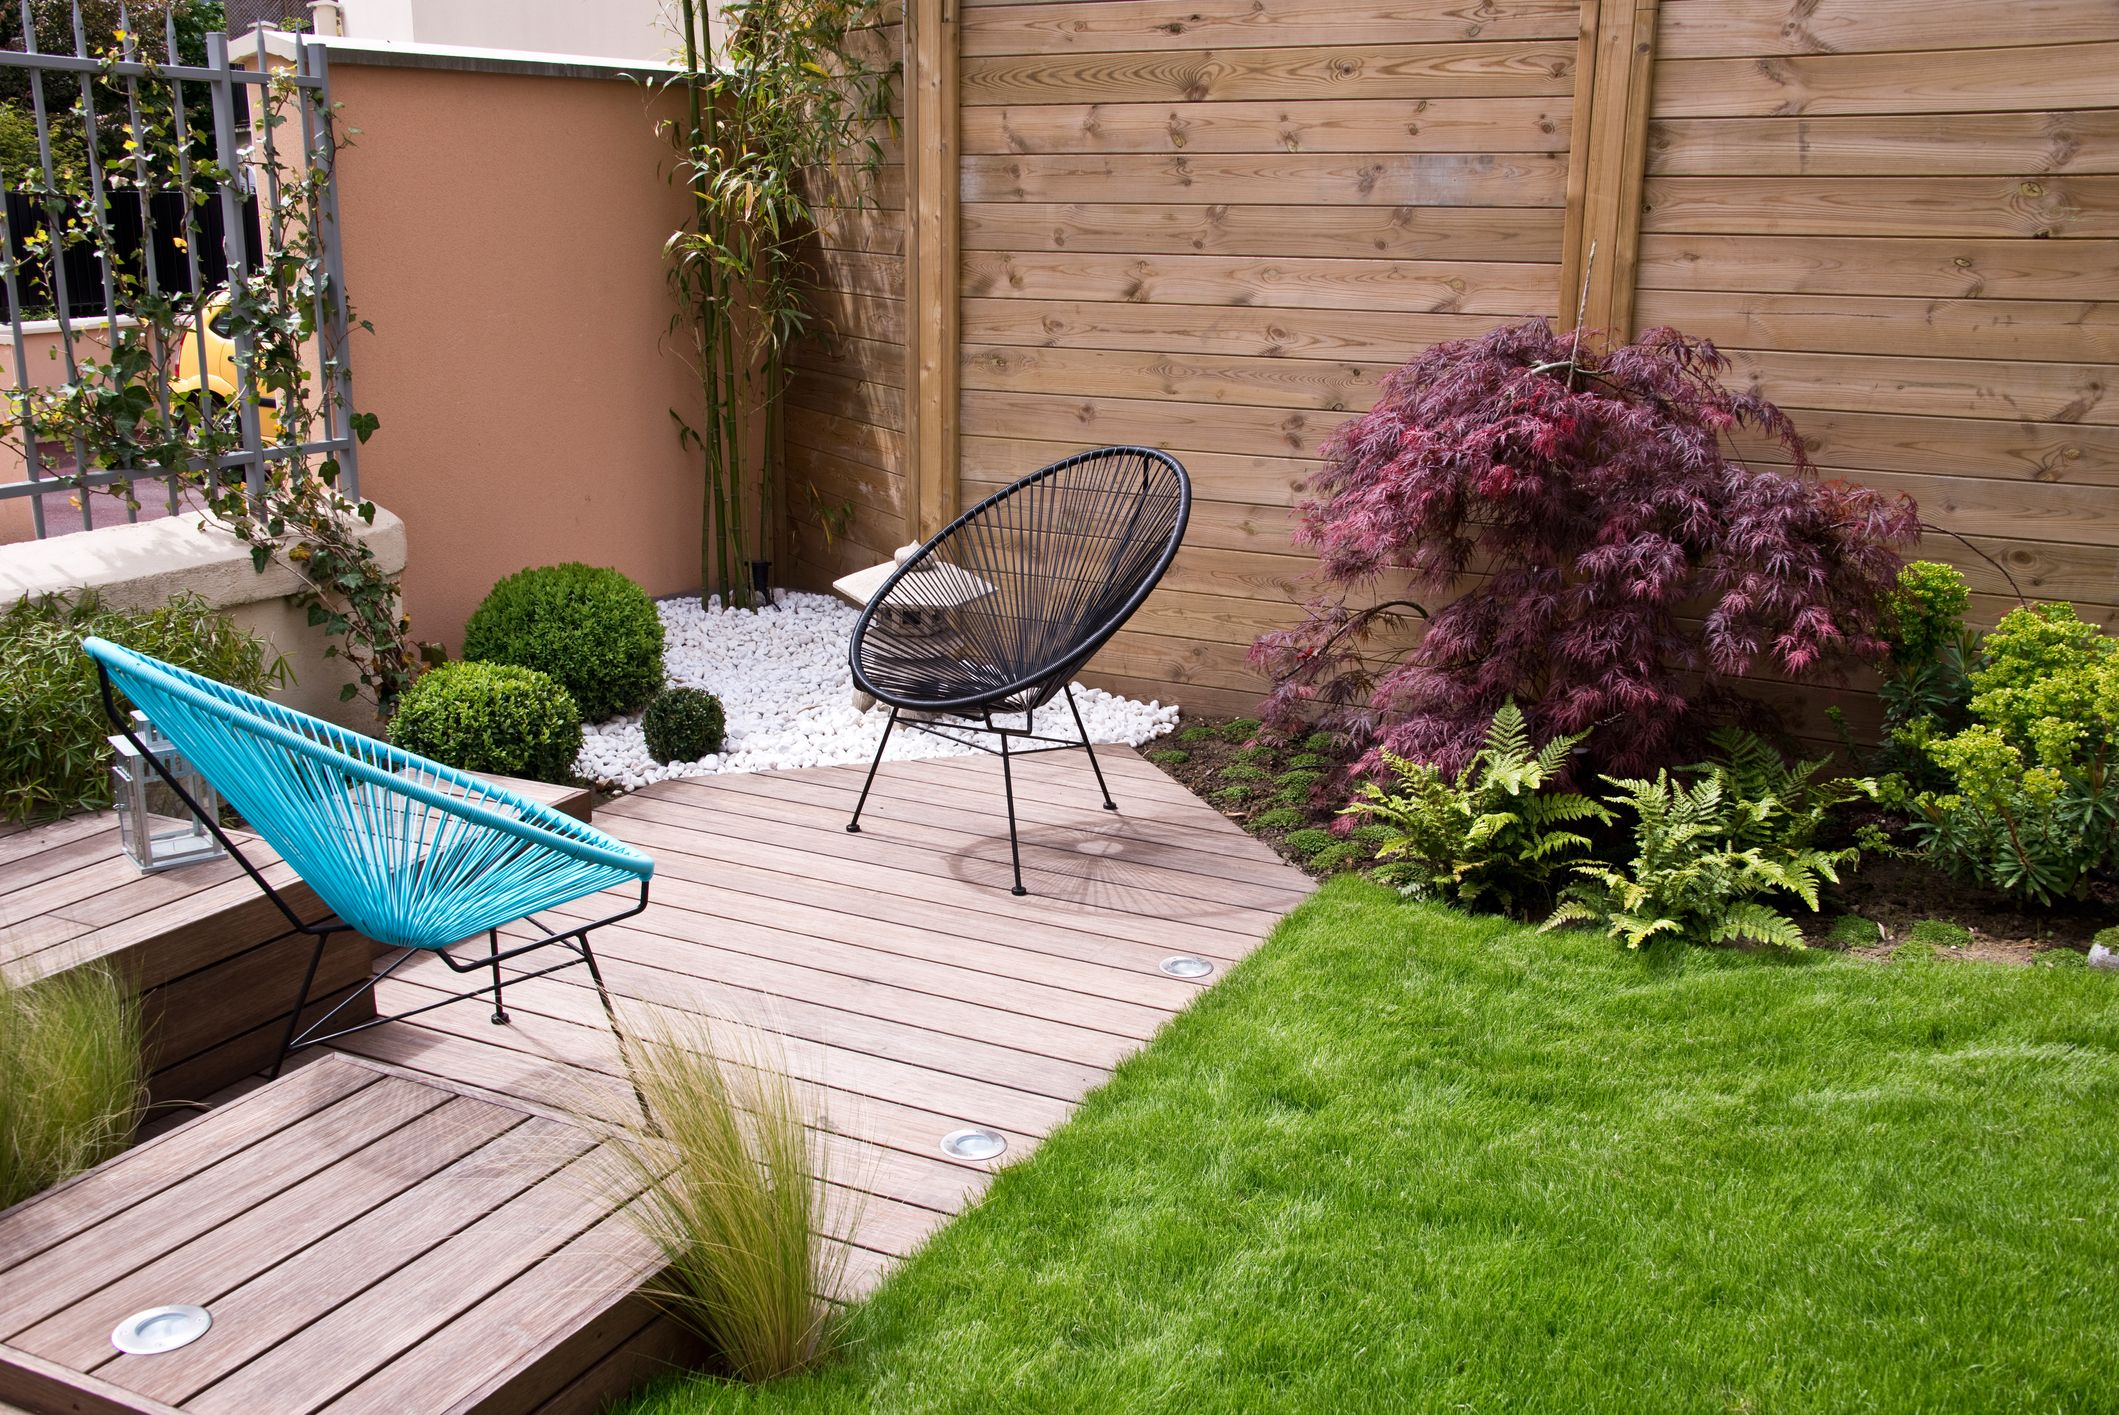 9 Small Garden Ideas On A Budget on Garden Design Ideas On A Budget  id=60854